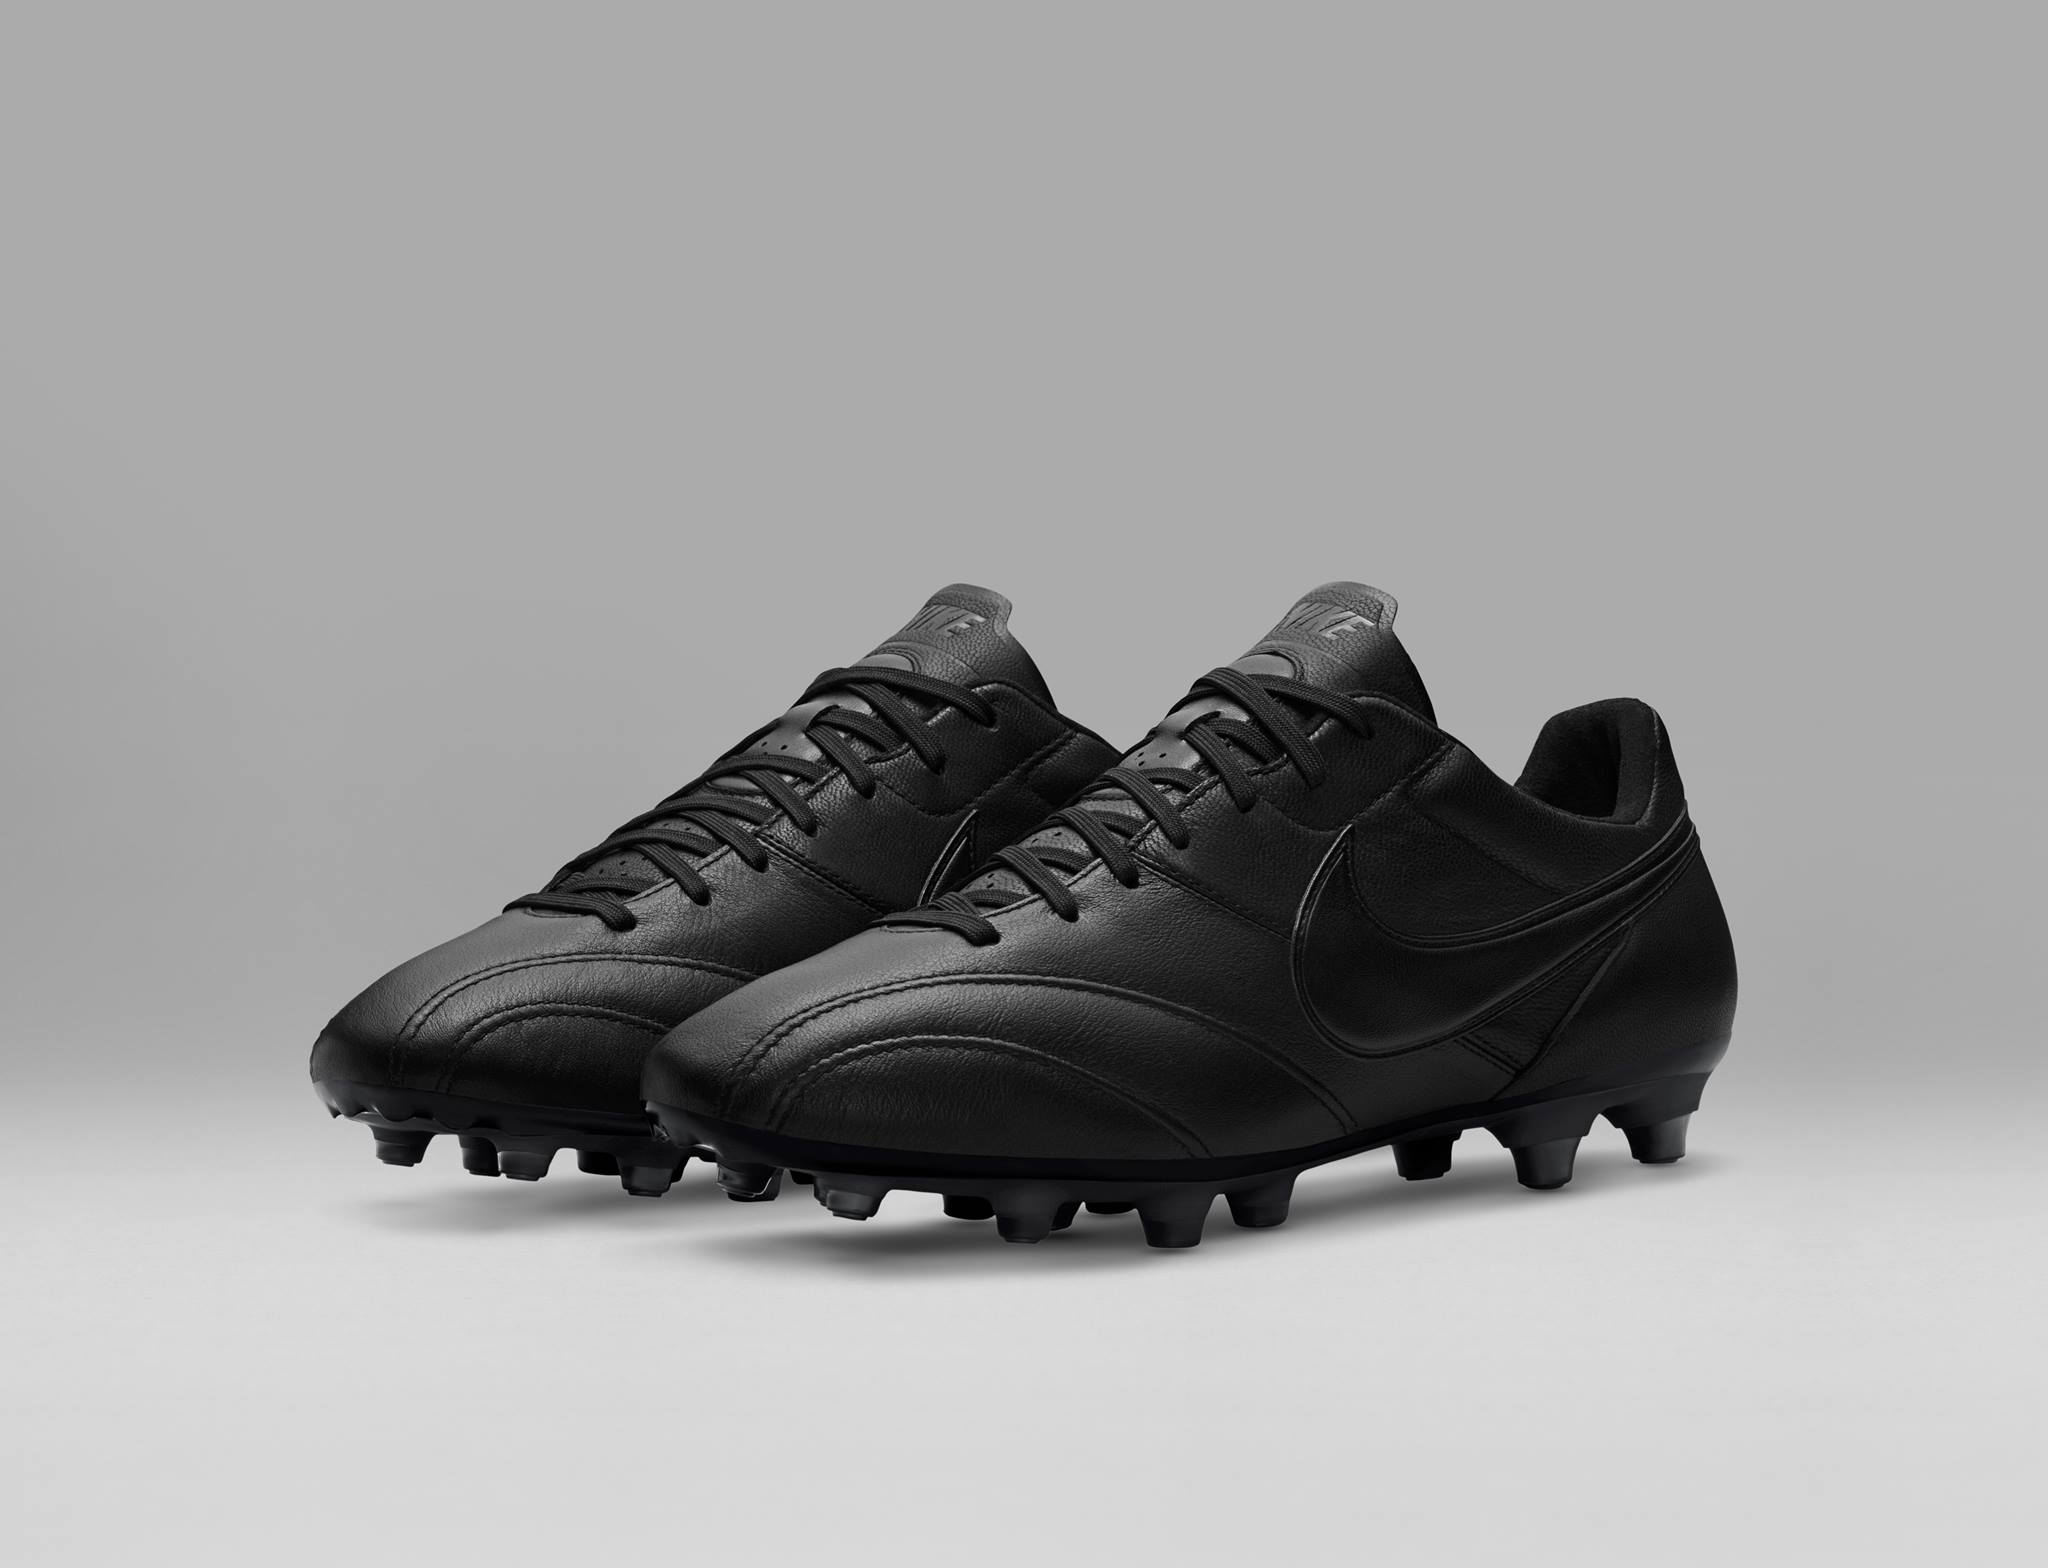 chaussure-football-nike-tiempo-premier-blackout